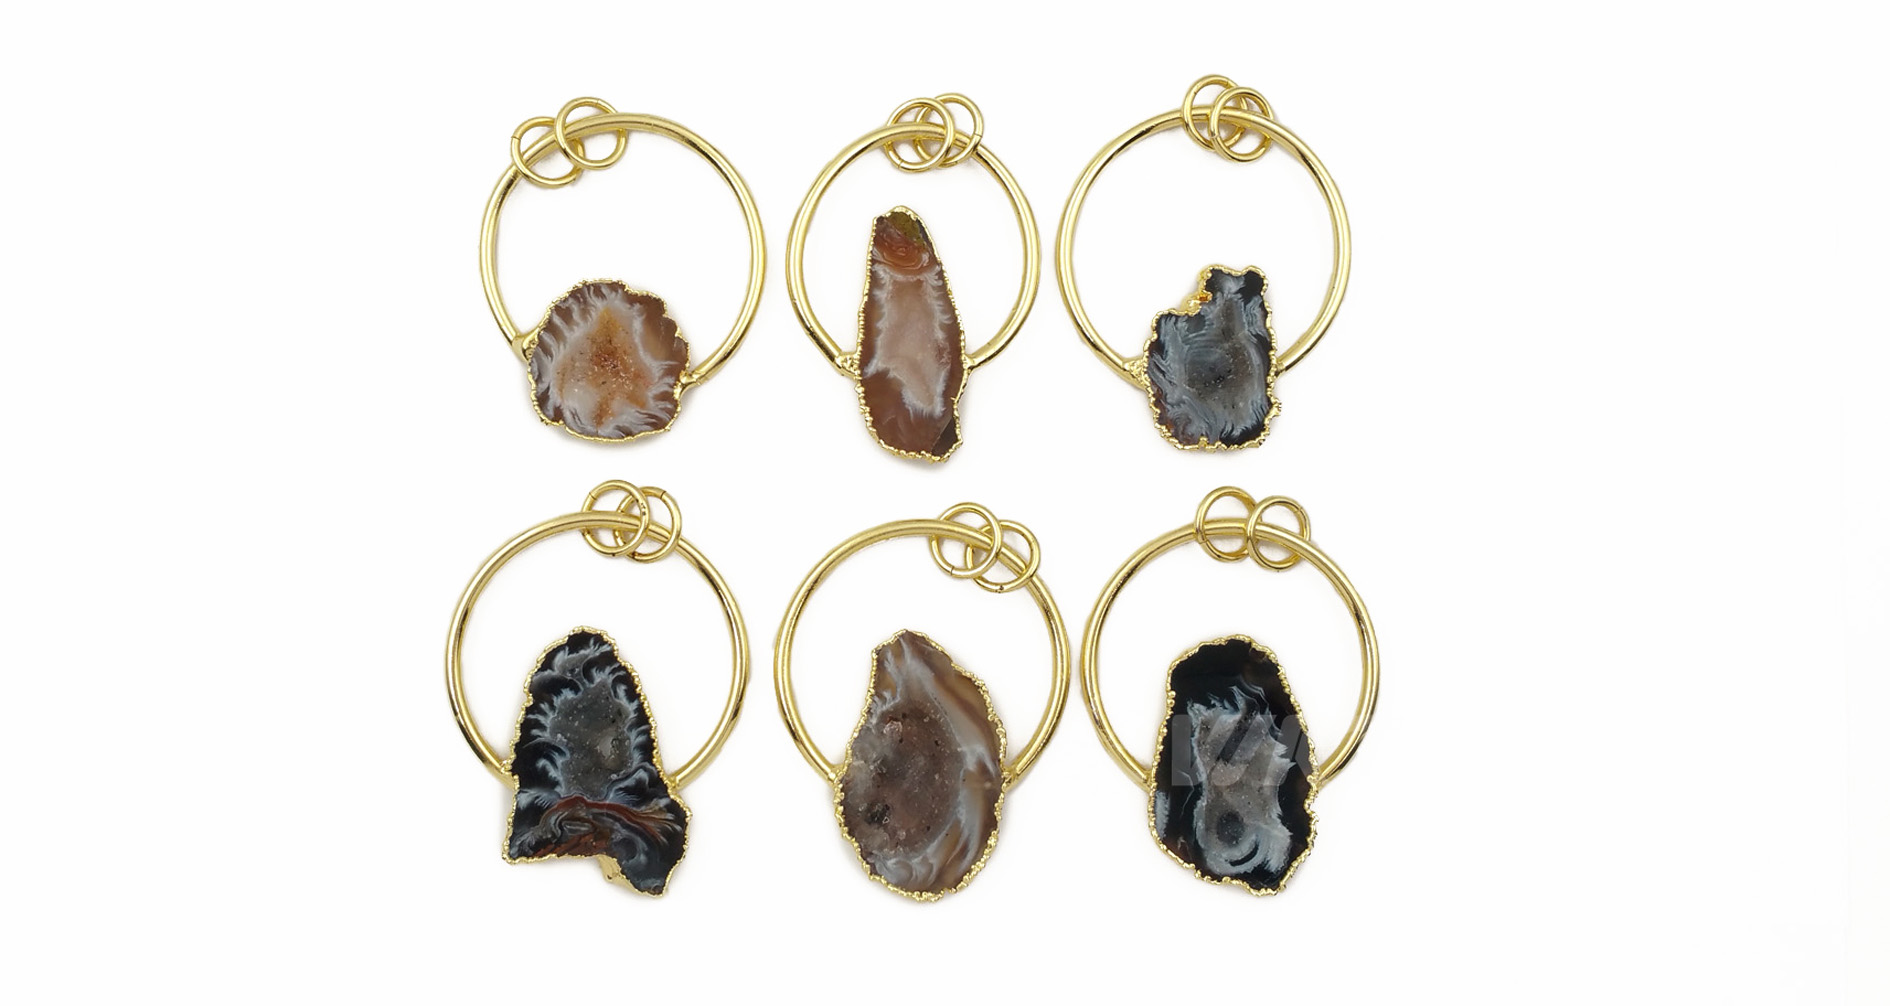 WT-P1455 wholesale Natural druzy geode agate Pendant with Golden Circle Women Necklace ornaments Jewelry